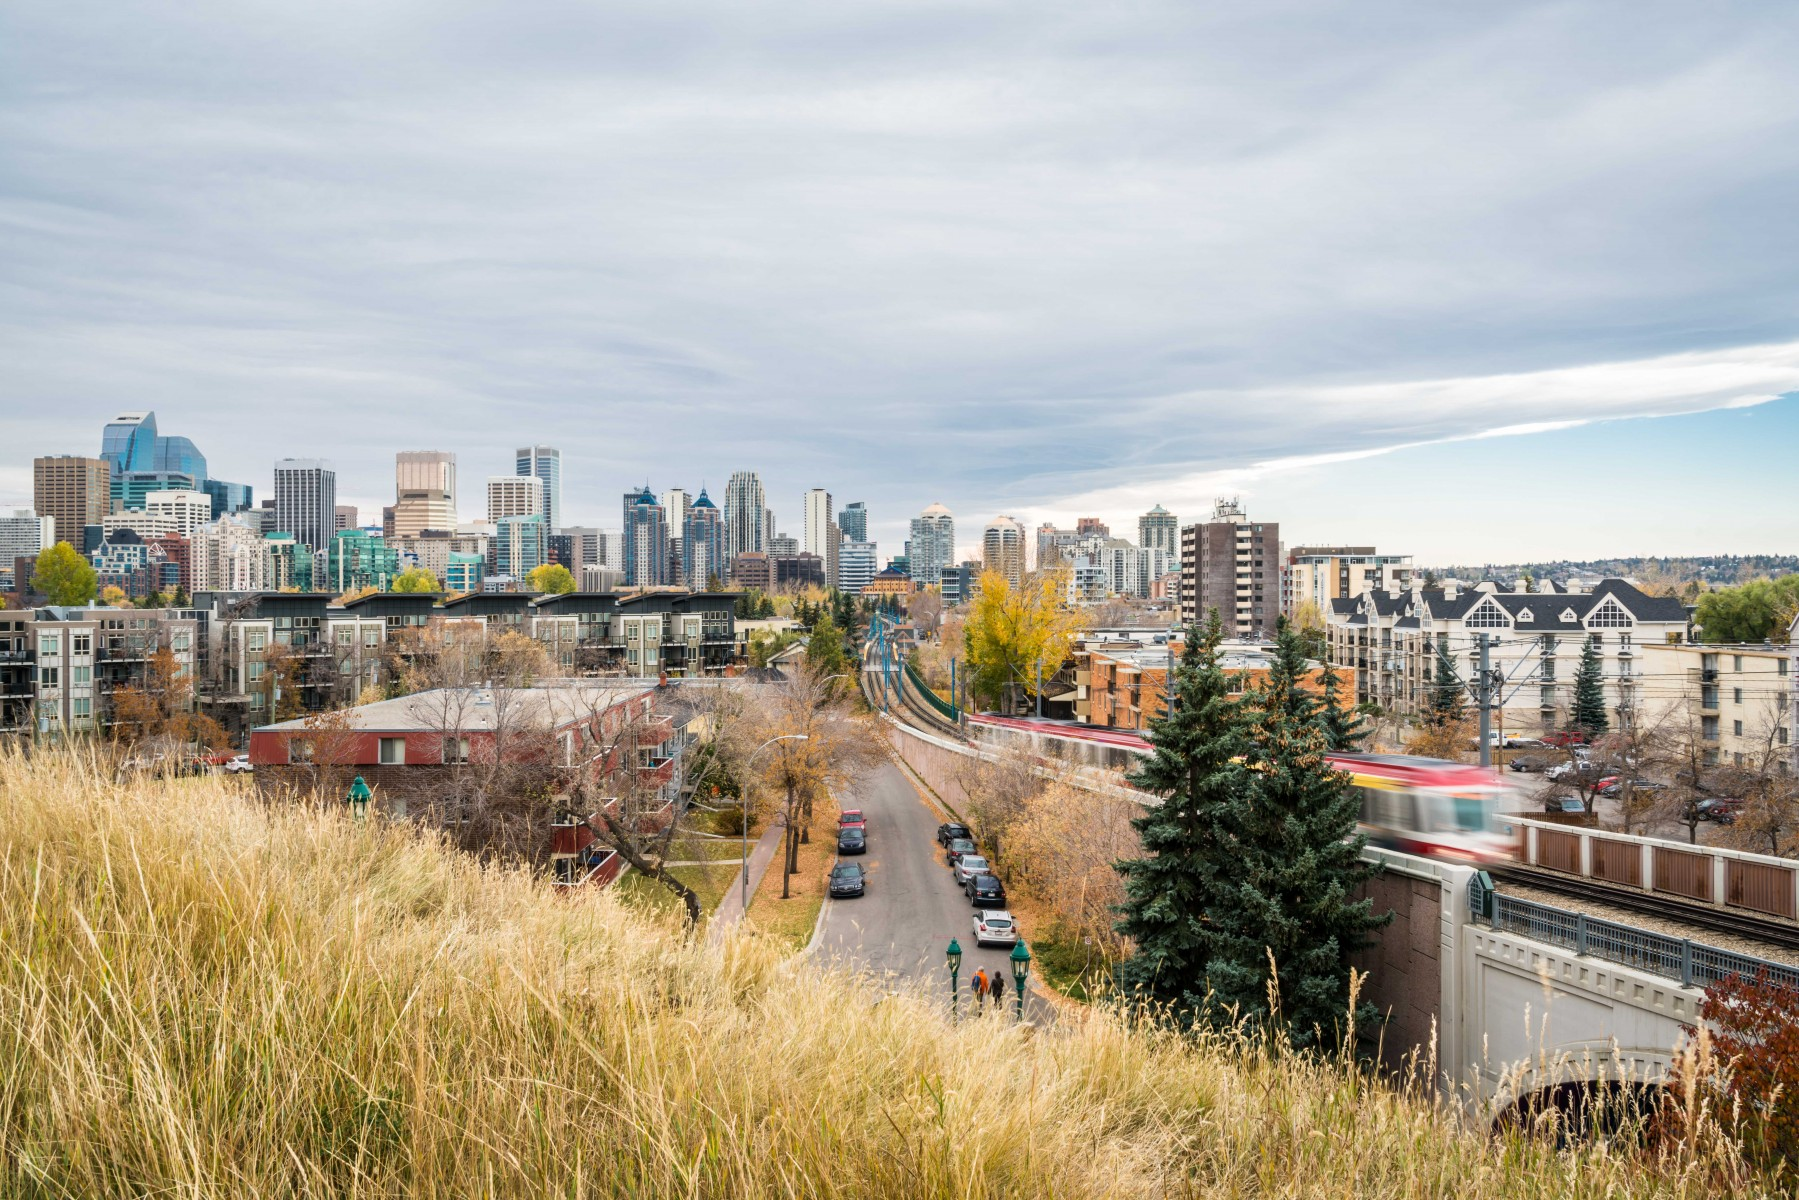 City Of Calgary Releases Proposed 2019-2022 Service Plans